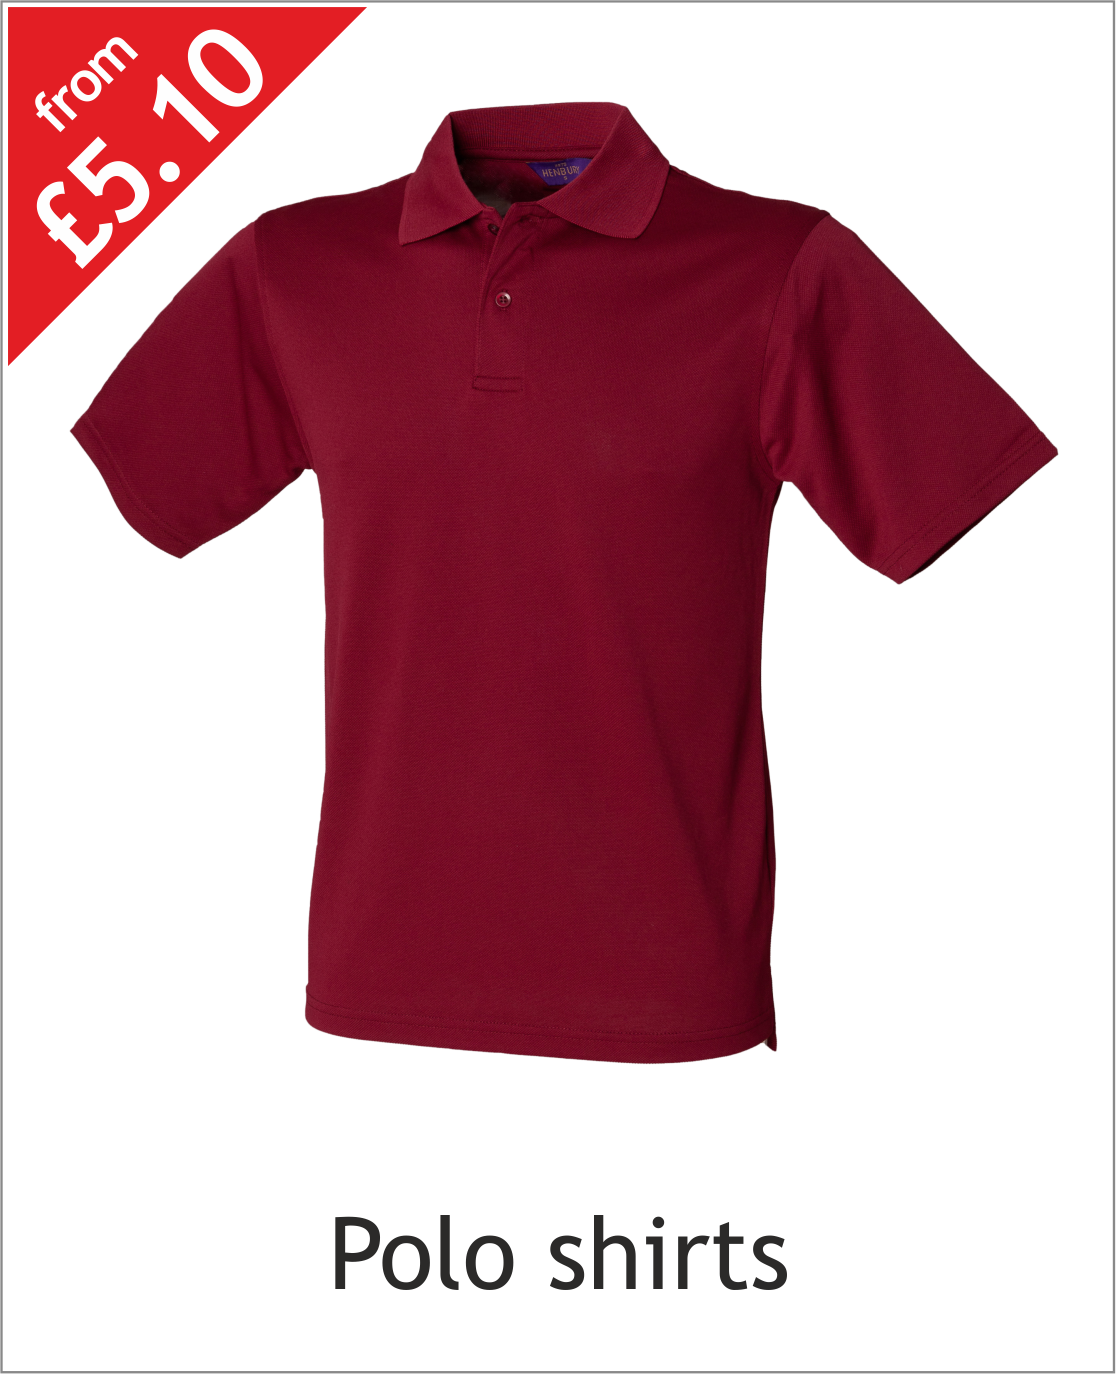 Embroidered & Printed polo shirt catagory